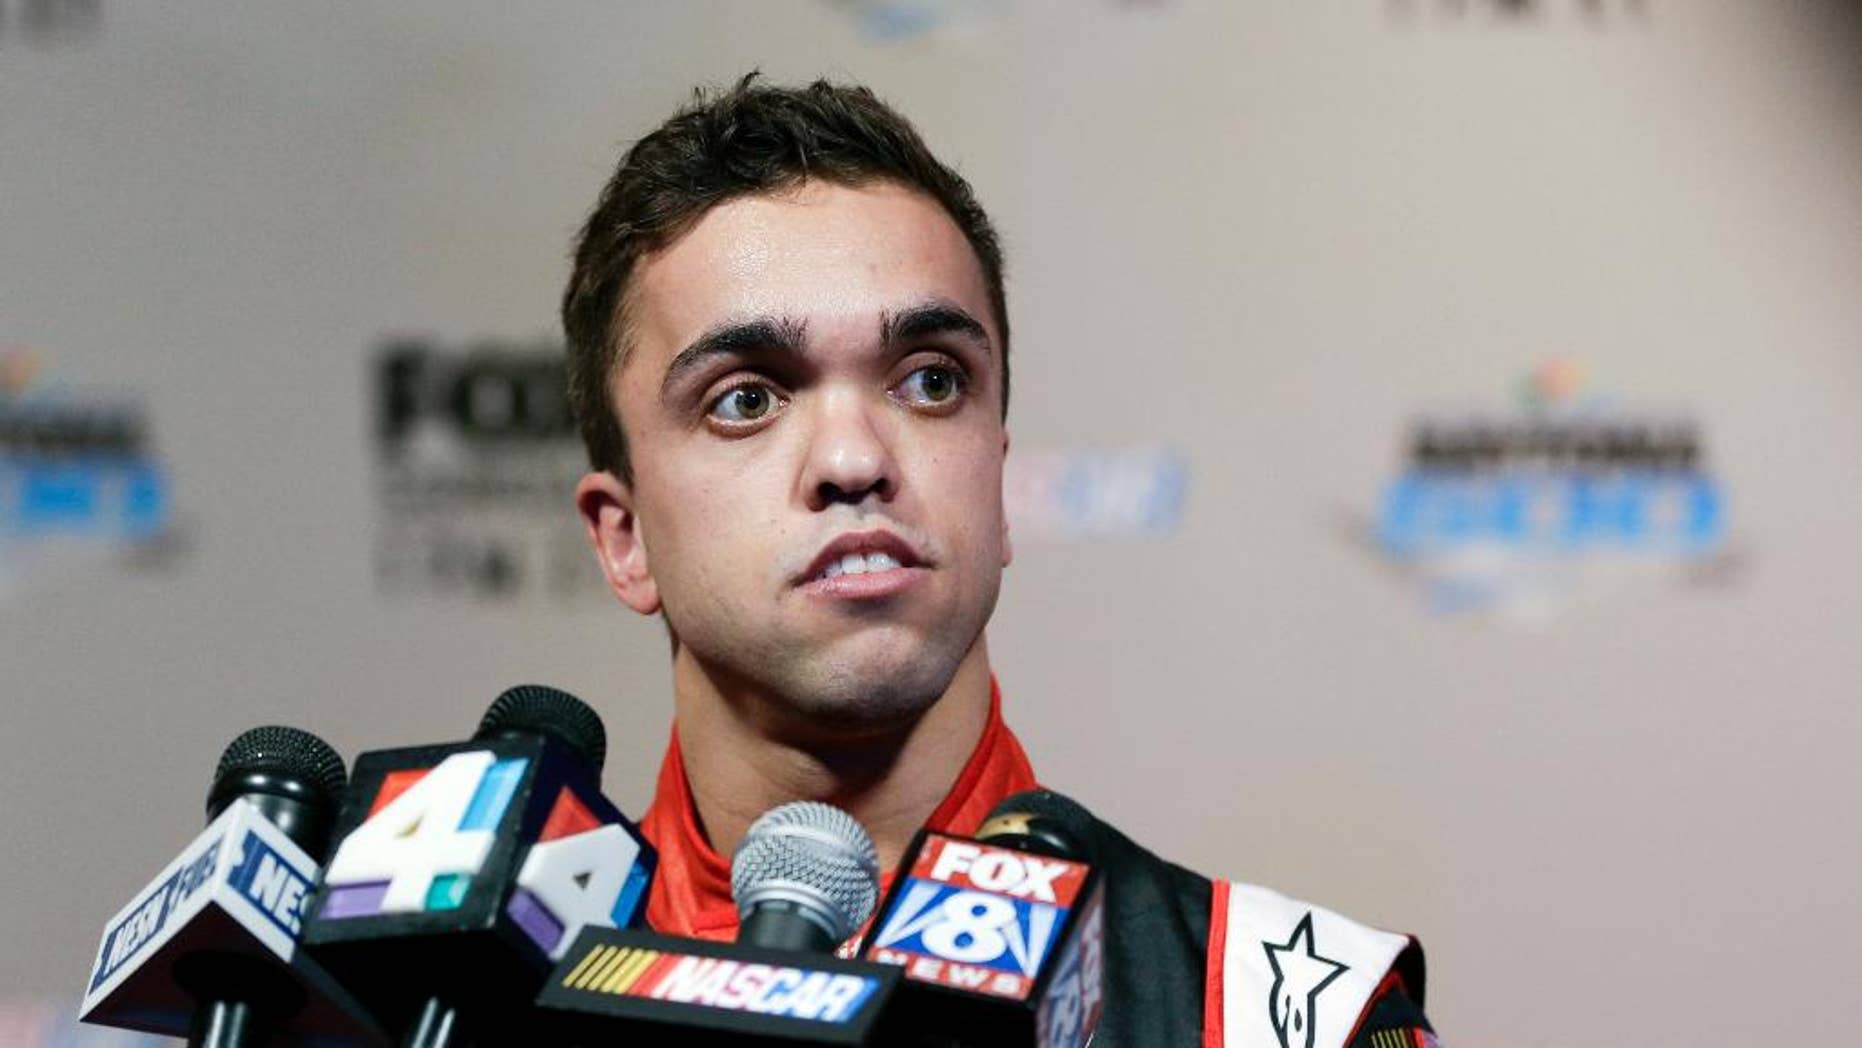 FILE - In this Feb. 16, 2016, file photo, truck series driver Rico Abreu answers questions from members of the media during NASCAR media day at Daytona International Speedwayin Daytona Beach, Fla. Abreu has roughly a dozen starts at Eldora Speedway, where the Truck Series races next week and Abreu likely has his best chance to qualify for NASCAR's playoffs. (AP Photo/John Raoux, File)